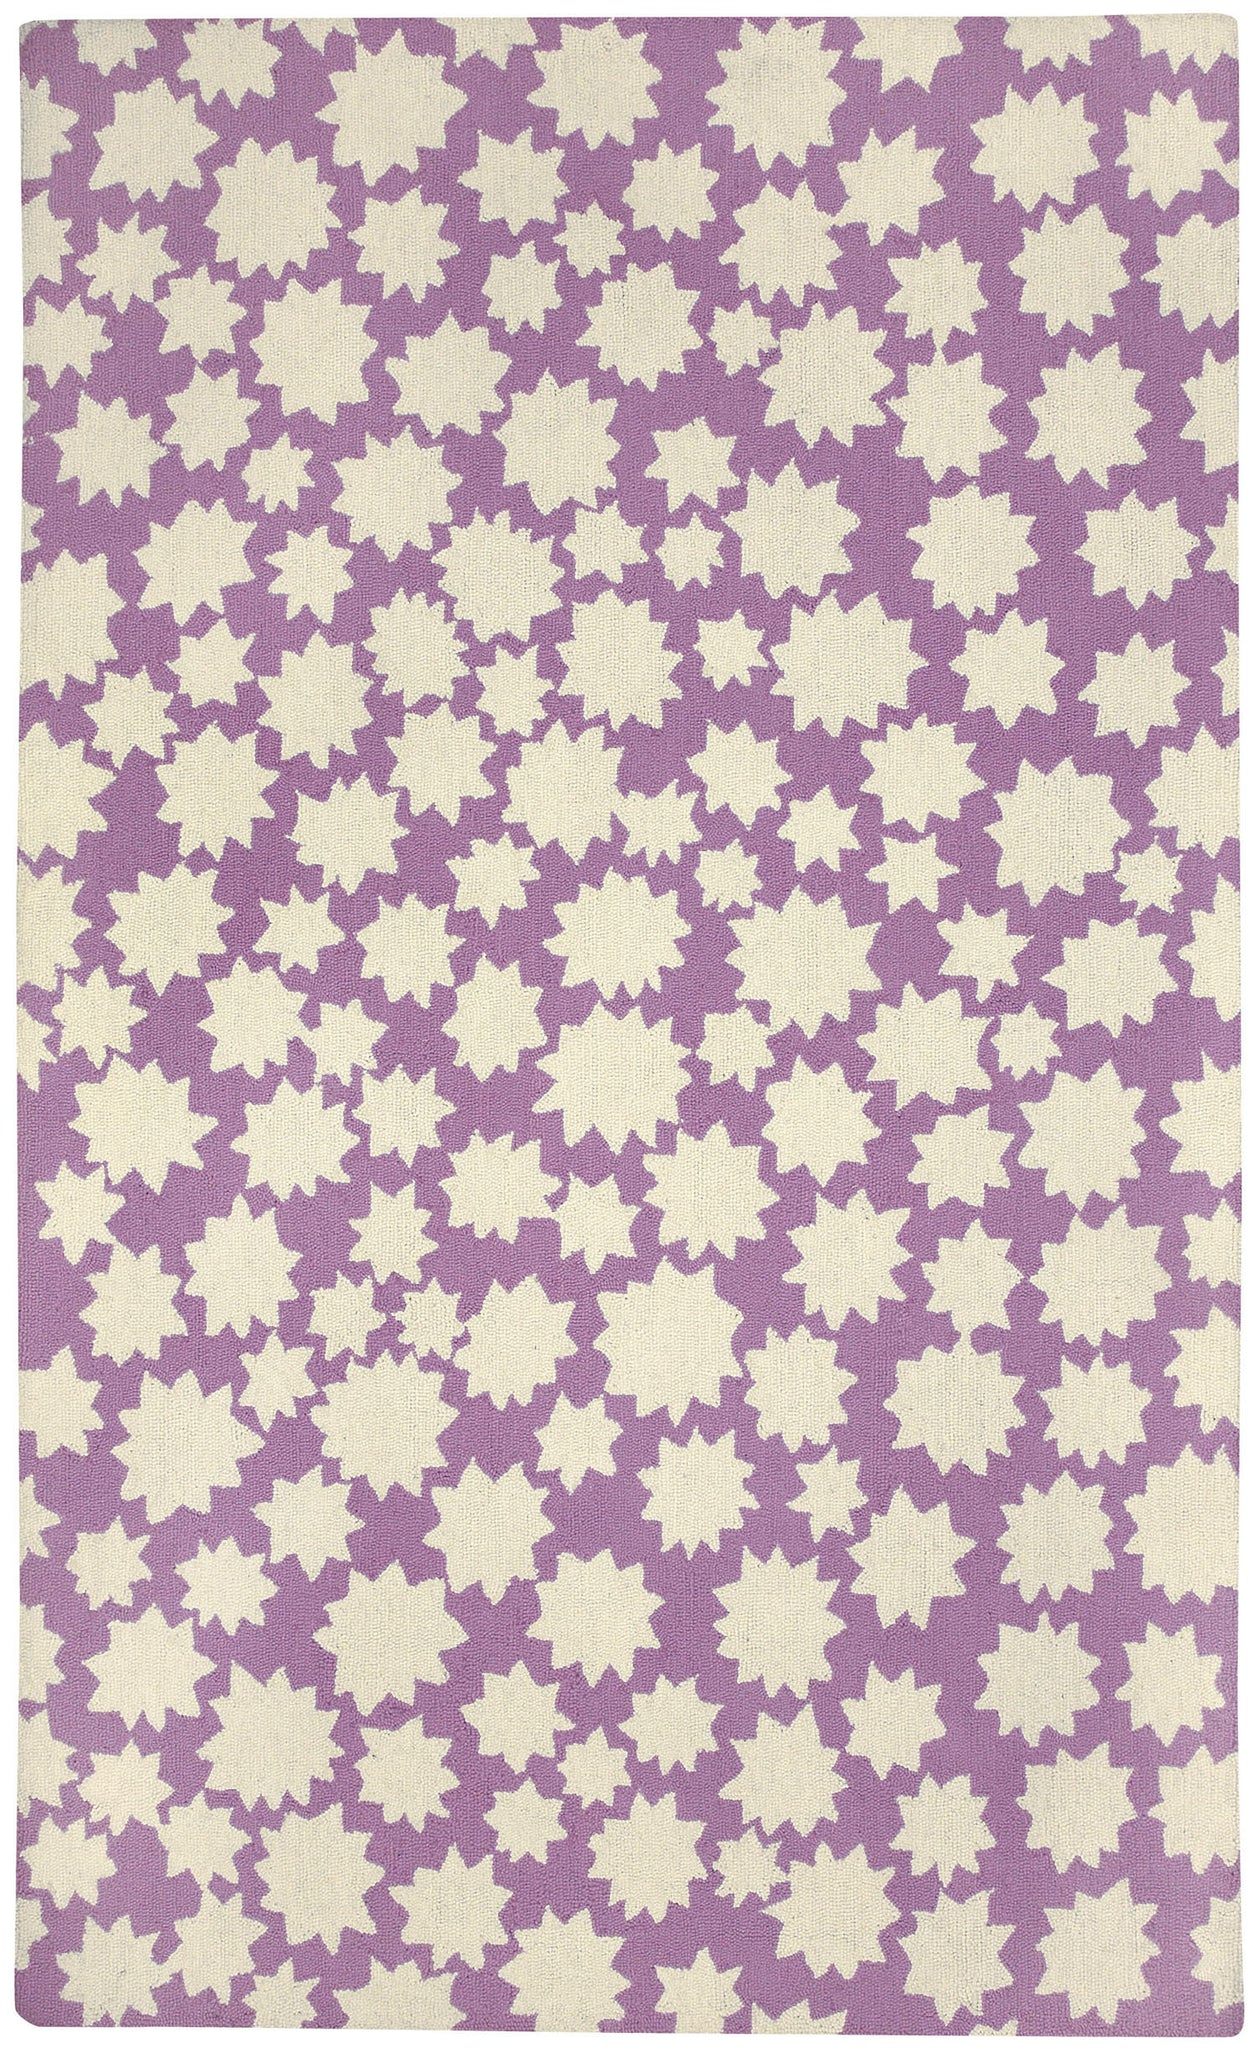 Capel Heavenly 6066 Purple 460 Area Rug by Hable Construction main image